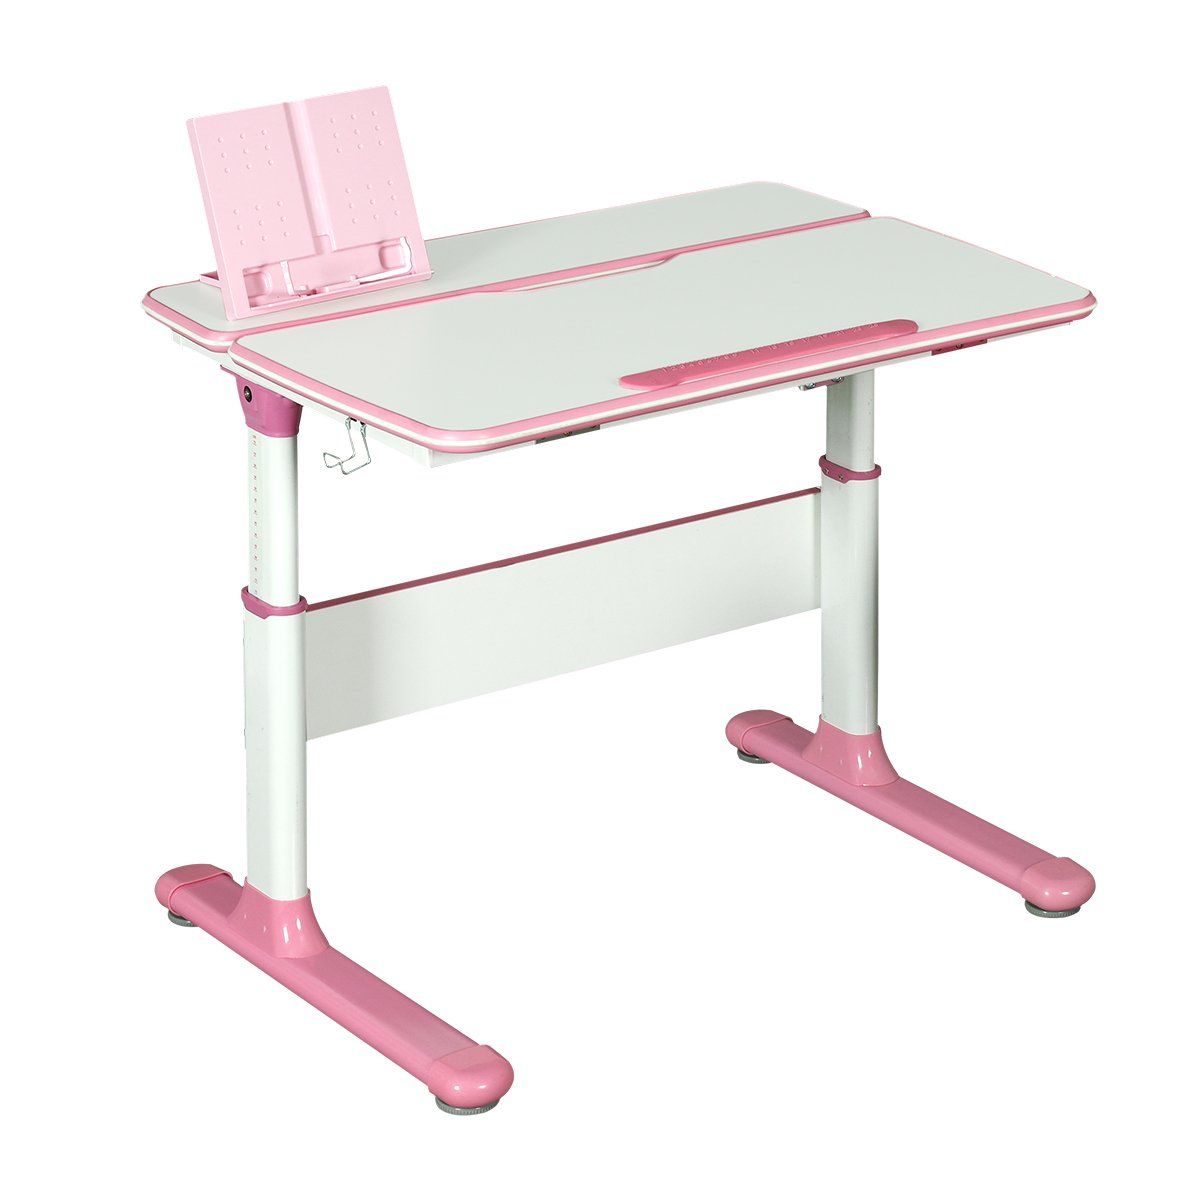 WLIVE Ergonomic Height Adjustable Children's Study Computer Desk(31.9W-Pink)